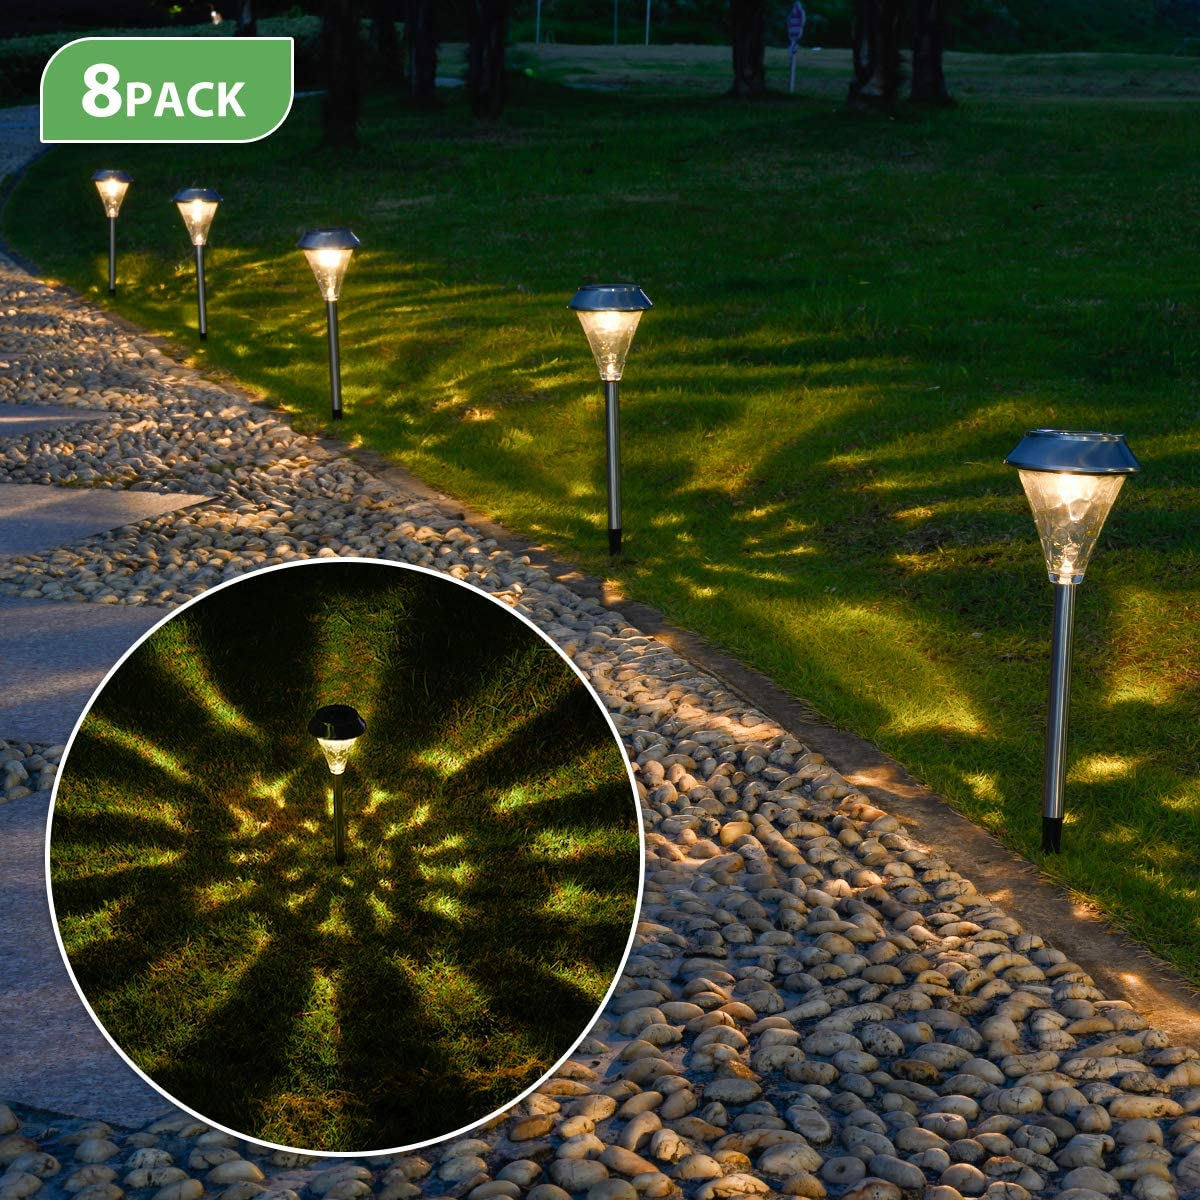 TWINSLUXES Solar Pathway Lights Outdoor Stainless Steel Grass Light Glass Lamp Waterproof Metal Garden Walkway Lights LED Landscape Lighting for Pathway, Sidewalk, Lawn, Patio, Yard 8 Pack Warm lights